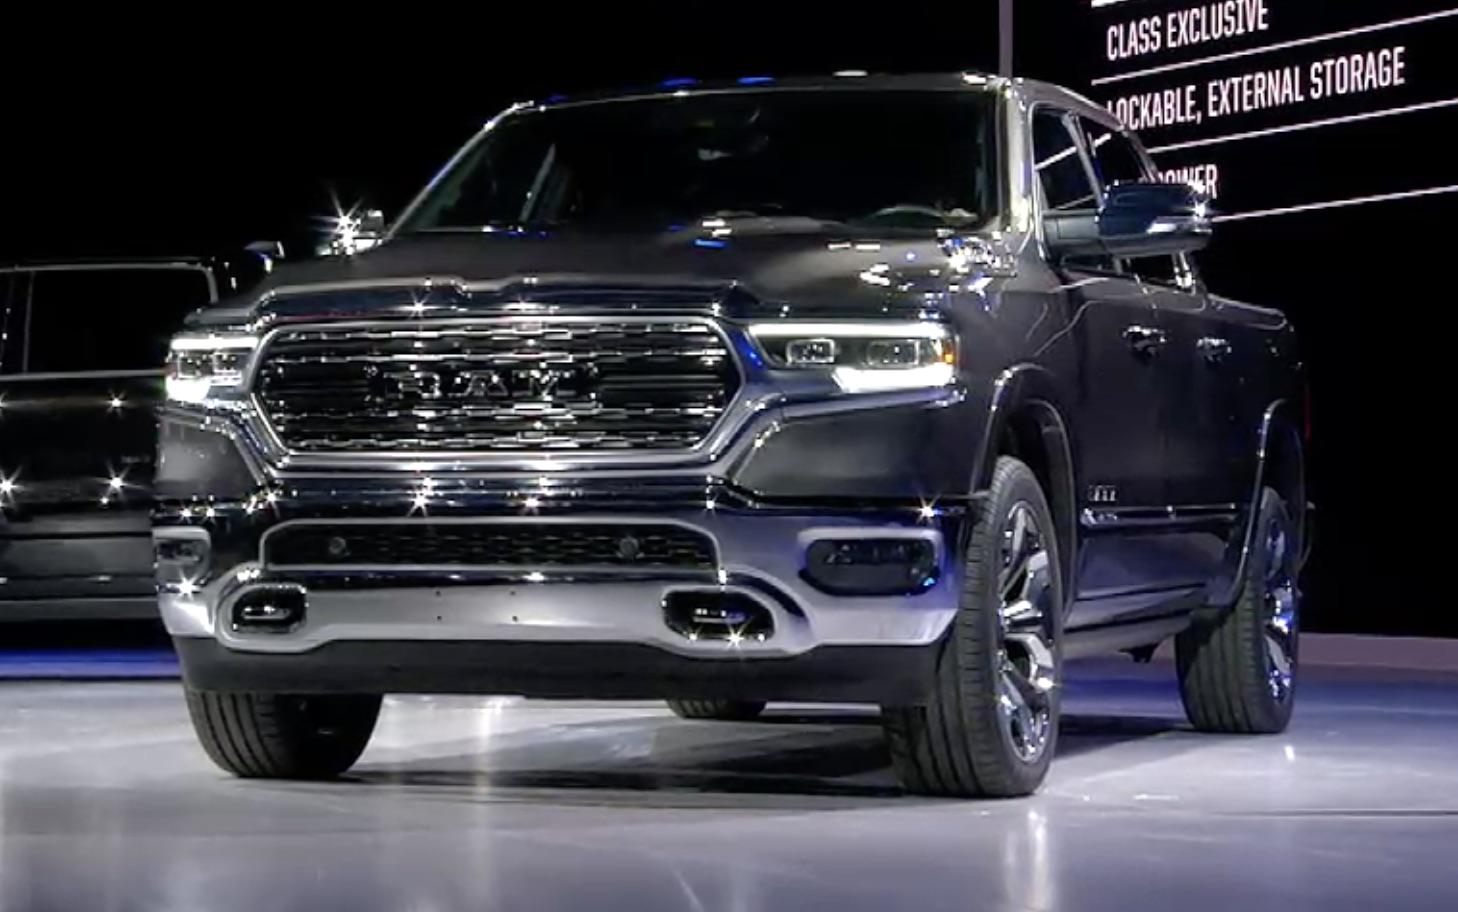 Unveiled: 2019 Ram – An All-New Truck To Compete In The Heated Marketplace!